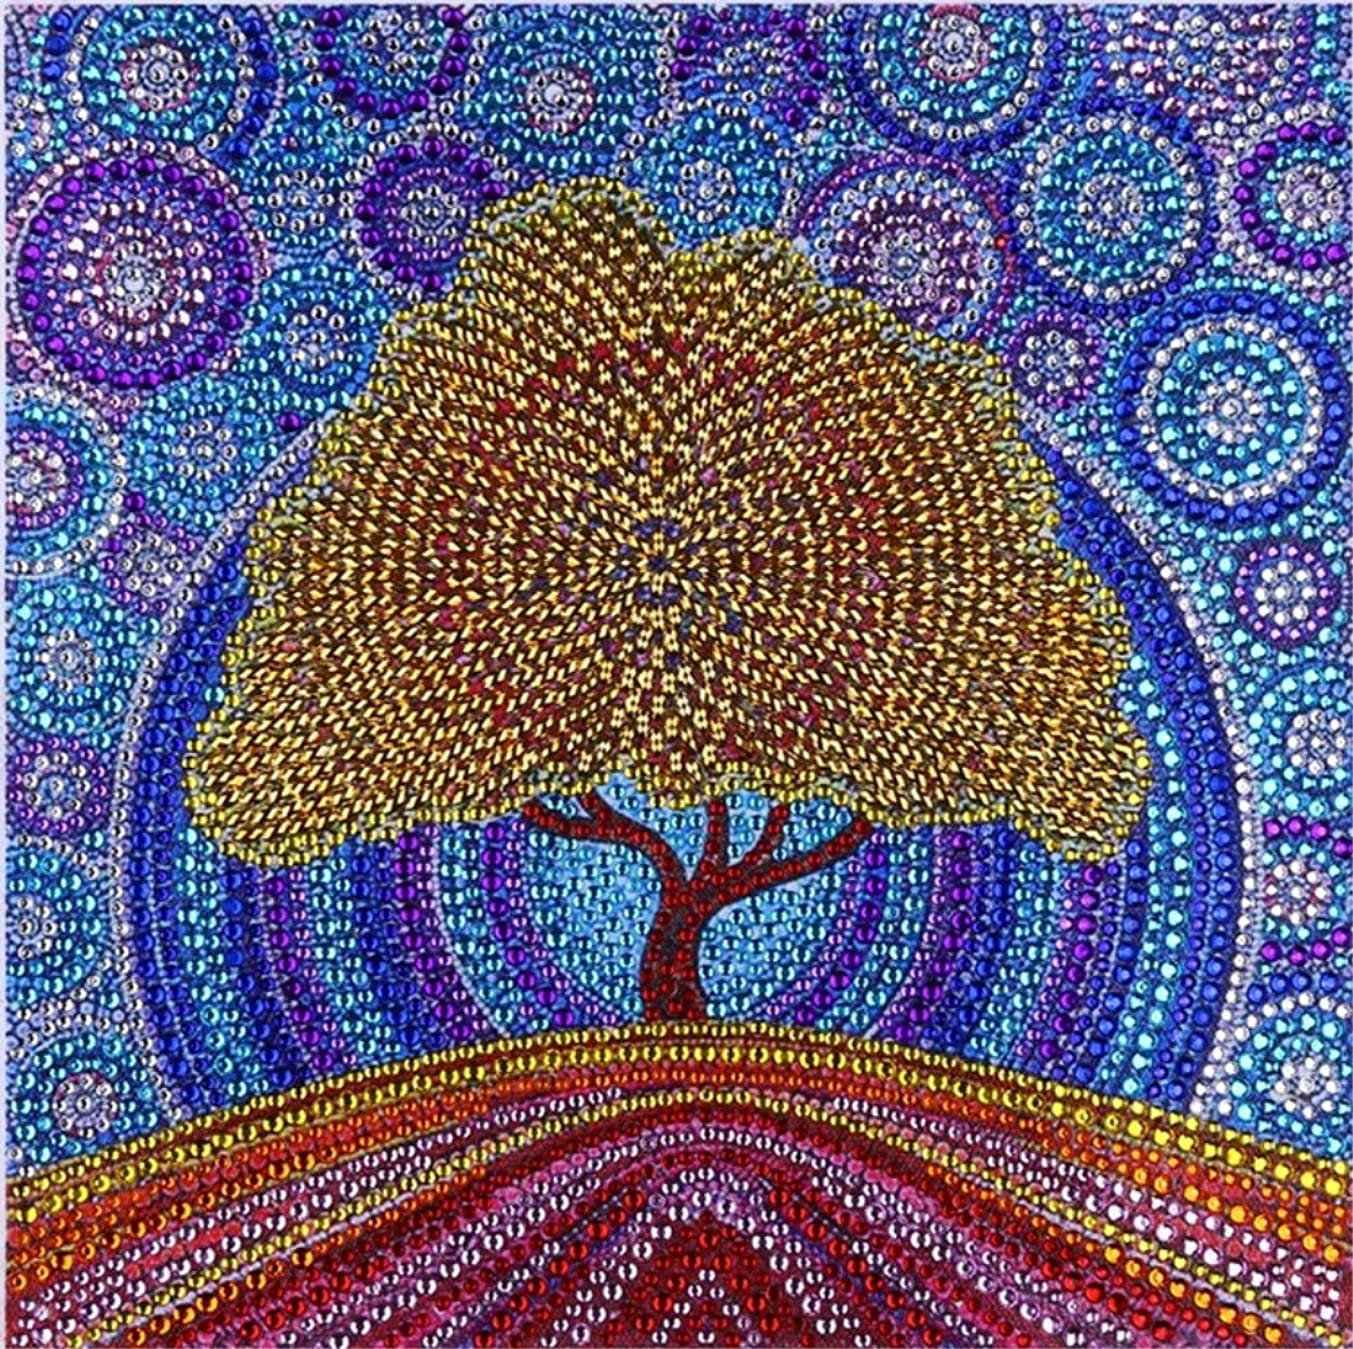 XYEBS DIY 5D Diamond Painting by Number Kit for Children Adults, Crystal Resin and Special Shaped Drill Embroidery Dotz Kit Cross Stitch Arts Craft Canvas Wall Decor-Gold Tree 12x12 inches